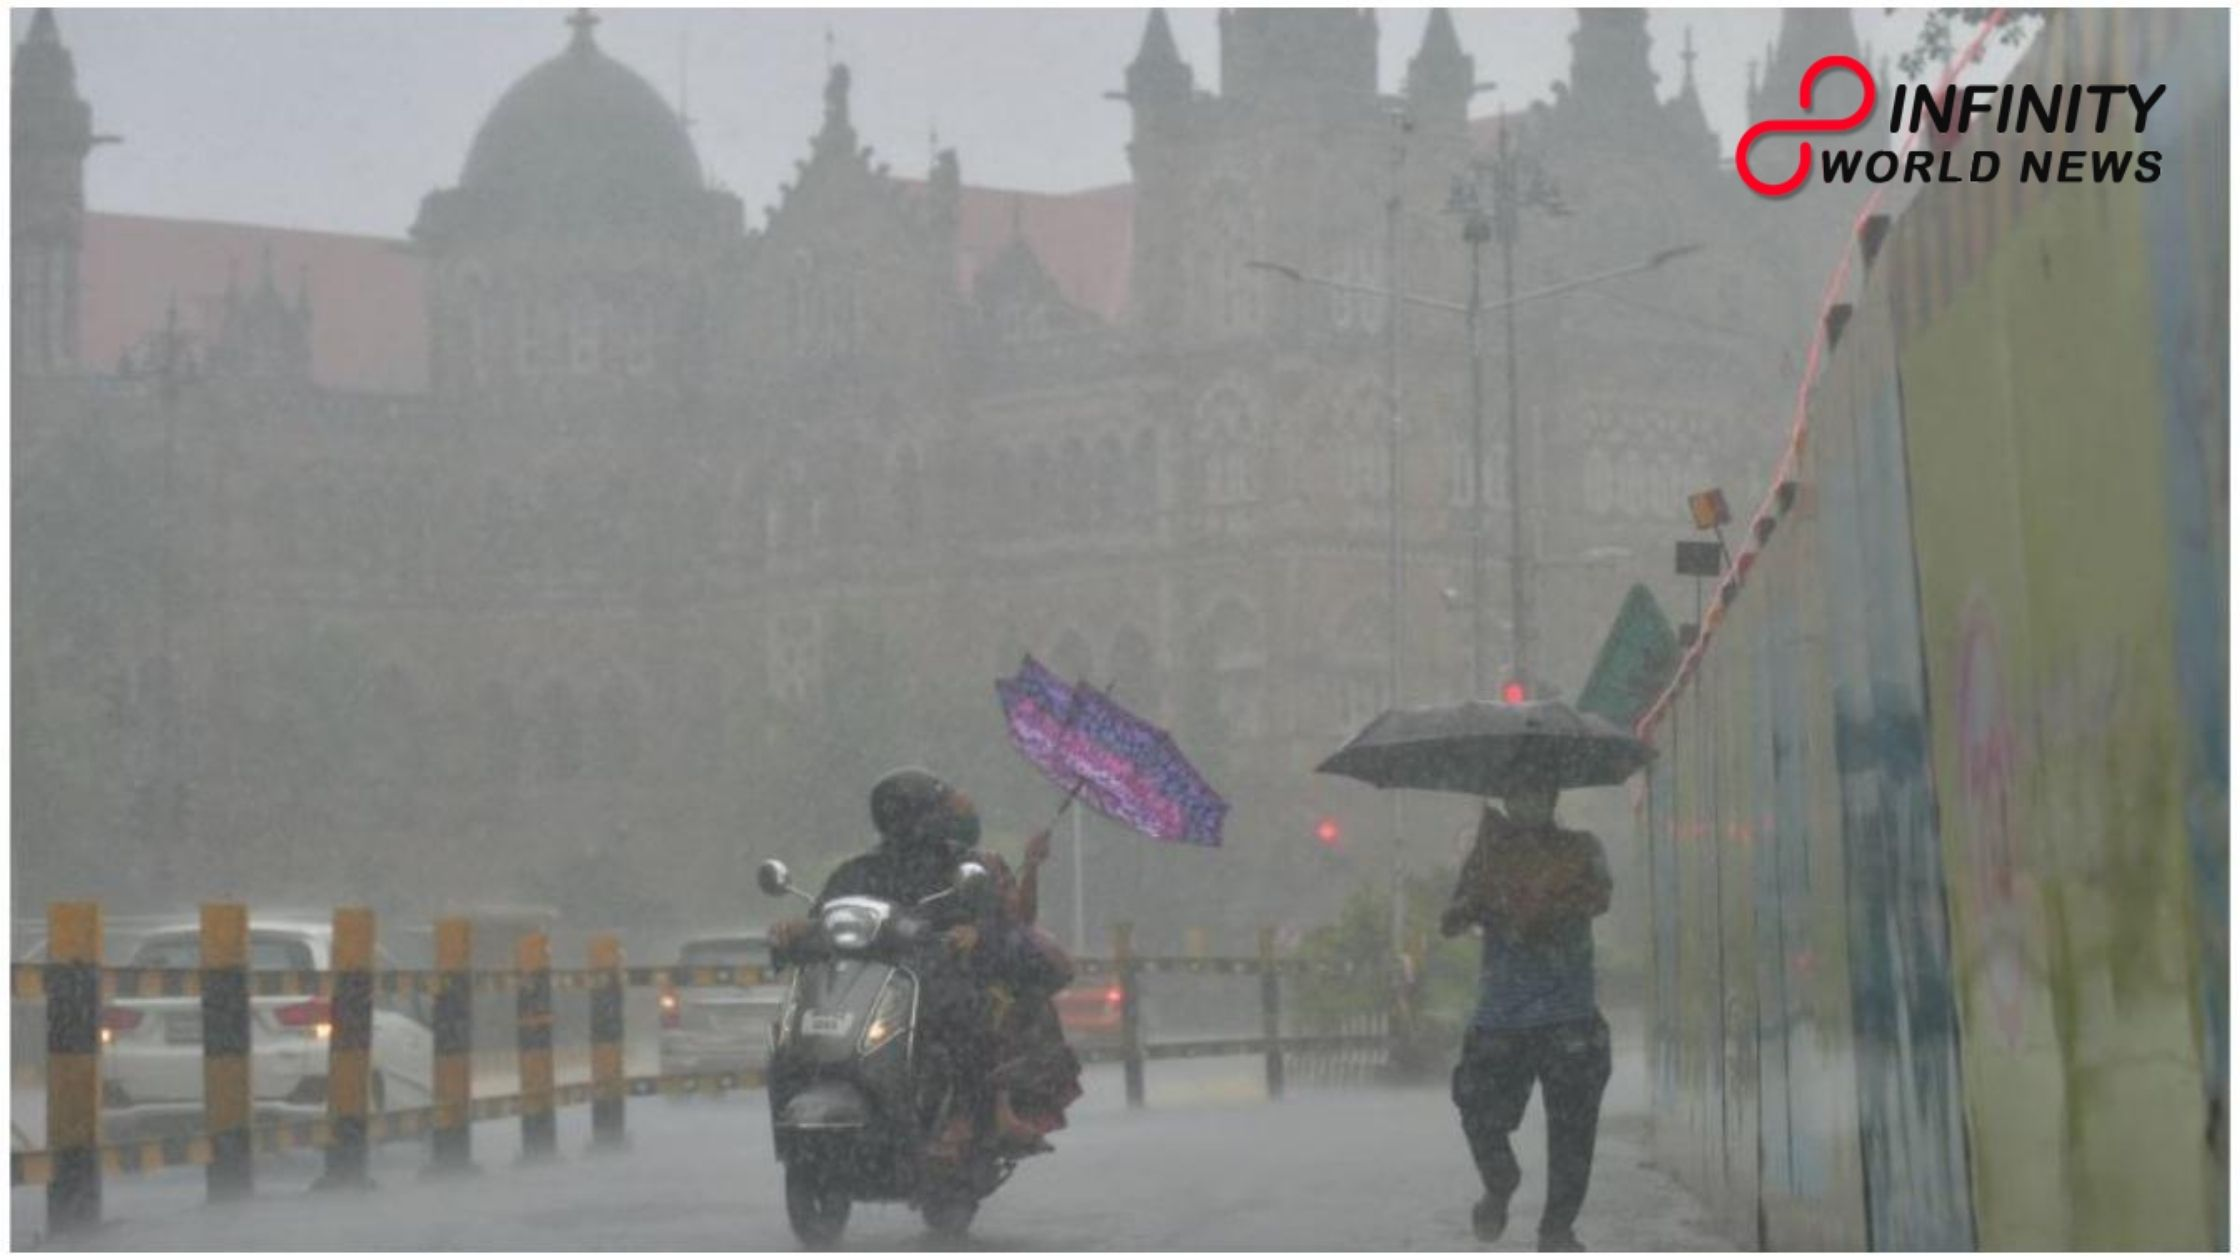 IMD predicts overwhelming precipitation in parts of Mumbai in next 24 hrs